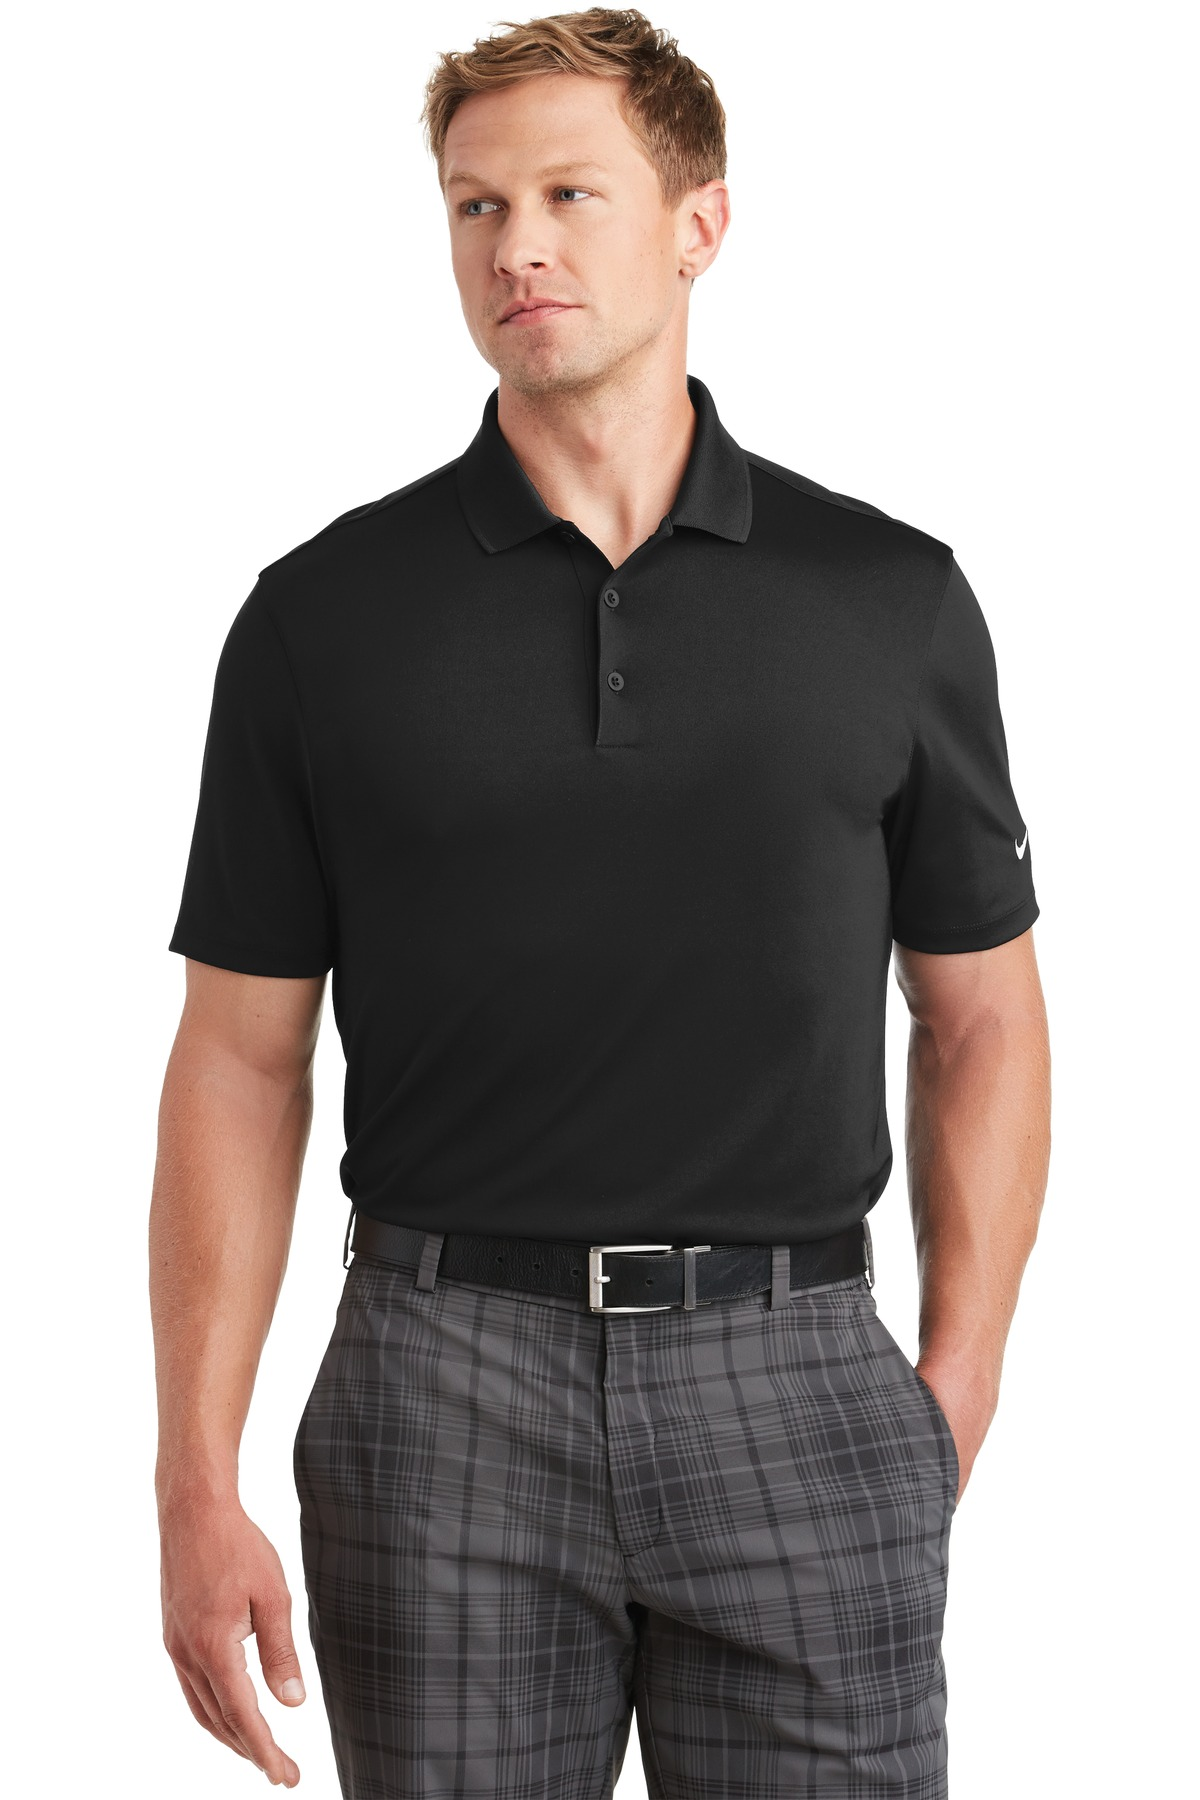 705342876-120 - Nike Golf Dri-FIT Players Polo w/Flat Knit Collar - thumbnail